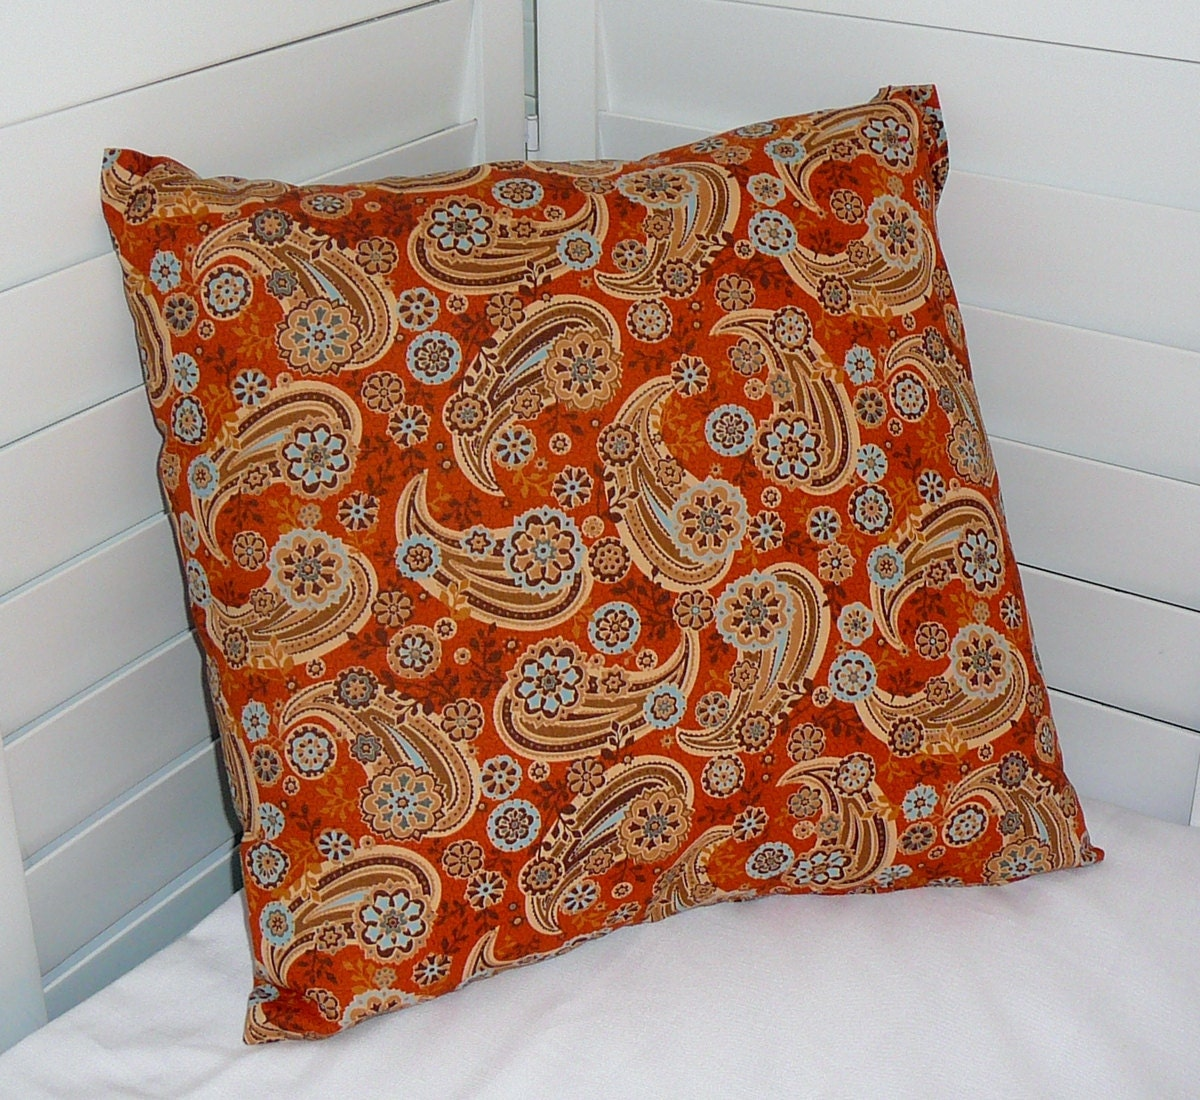 Pillow Covers 18 x 18 Throw Pillow Covers